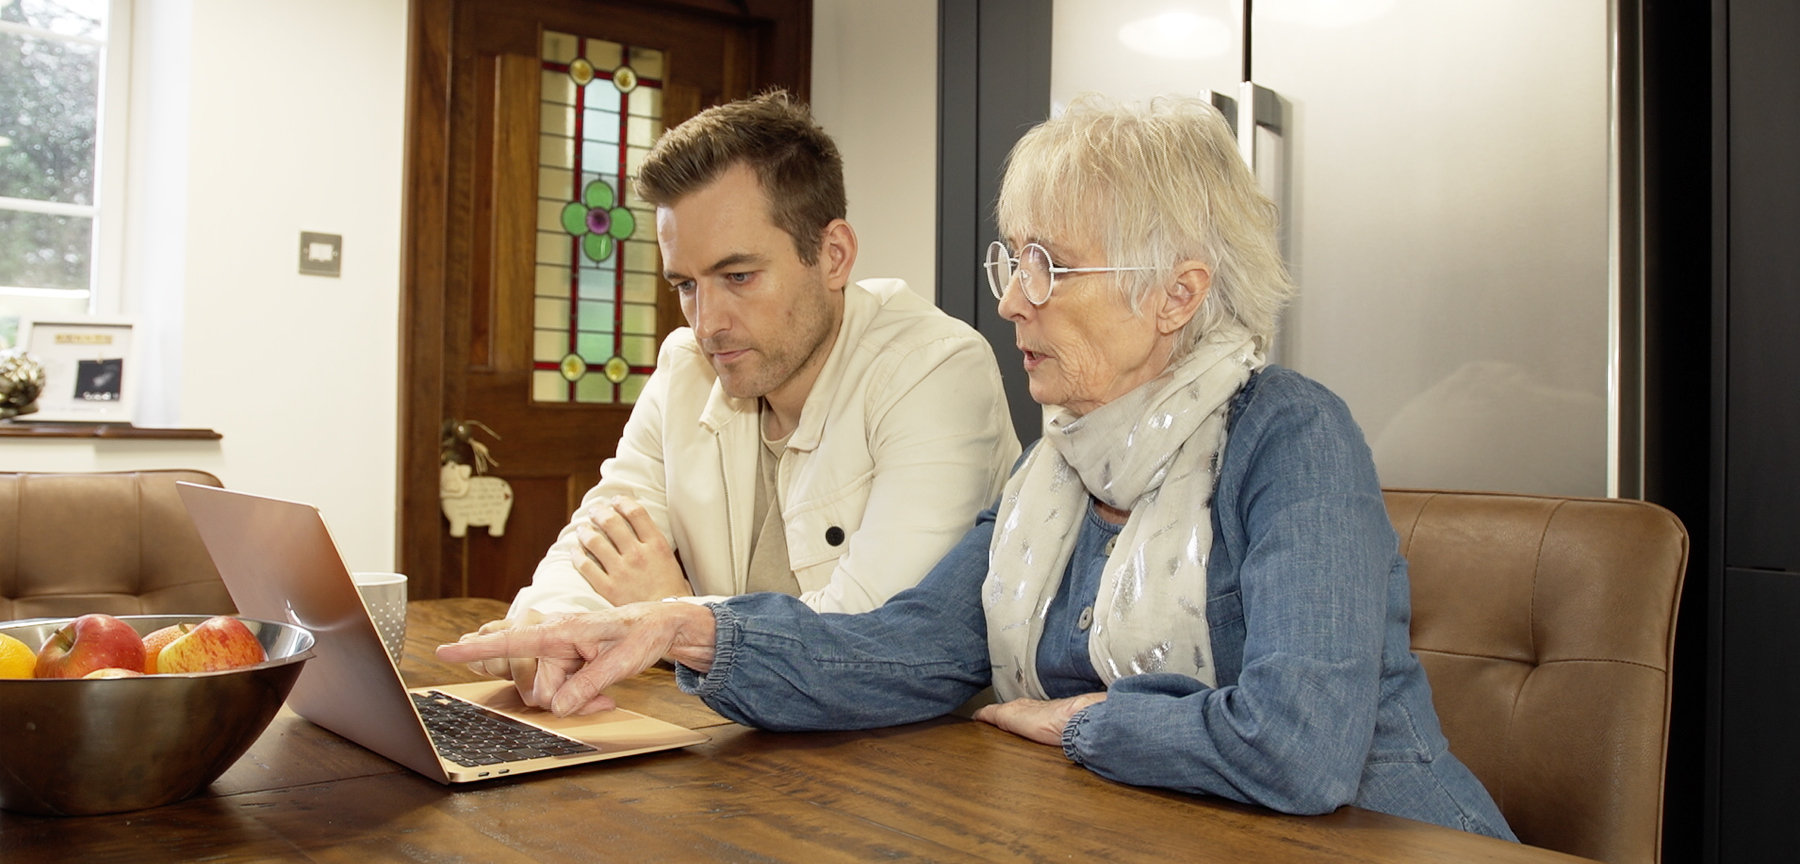 Our Care App Birdie helps you stay in touch with your elderly loved ones